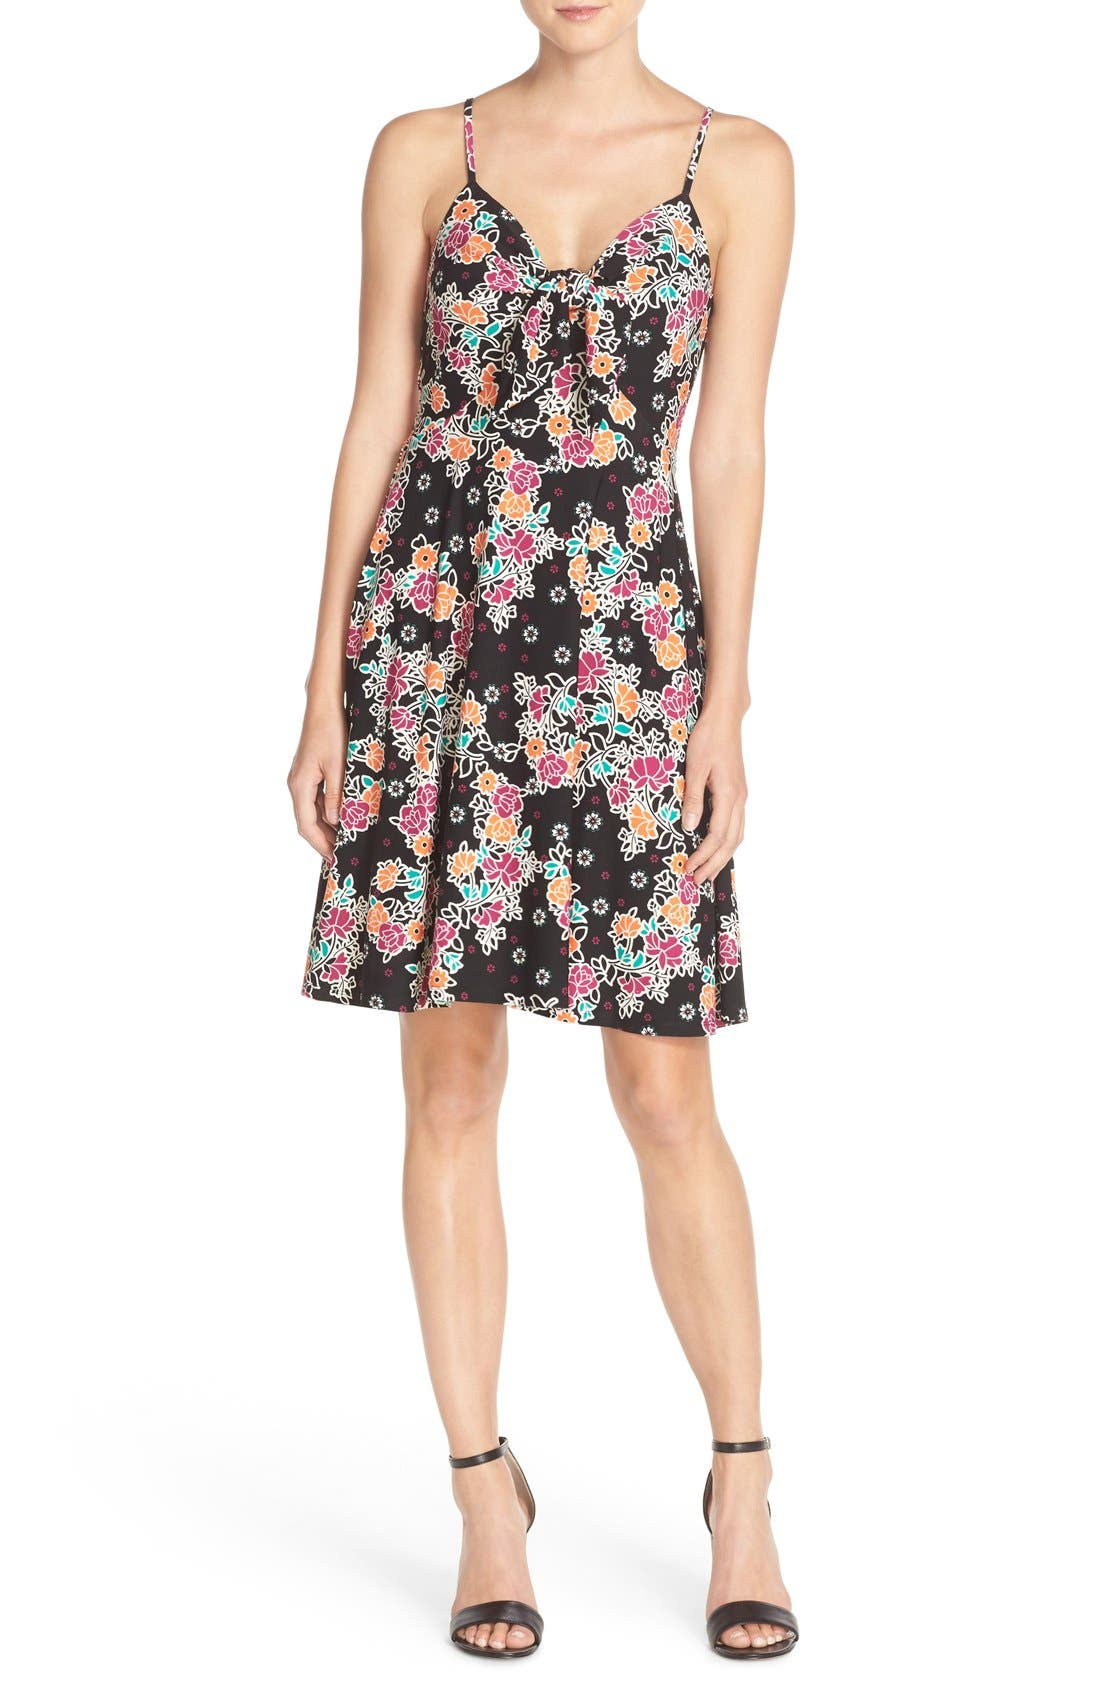 Alternate Image 1 Selected - ECI Bow Front Print Fit & Flare Dress